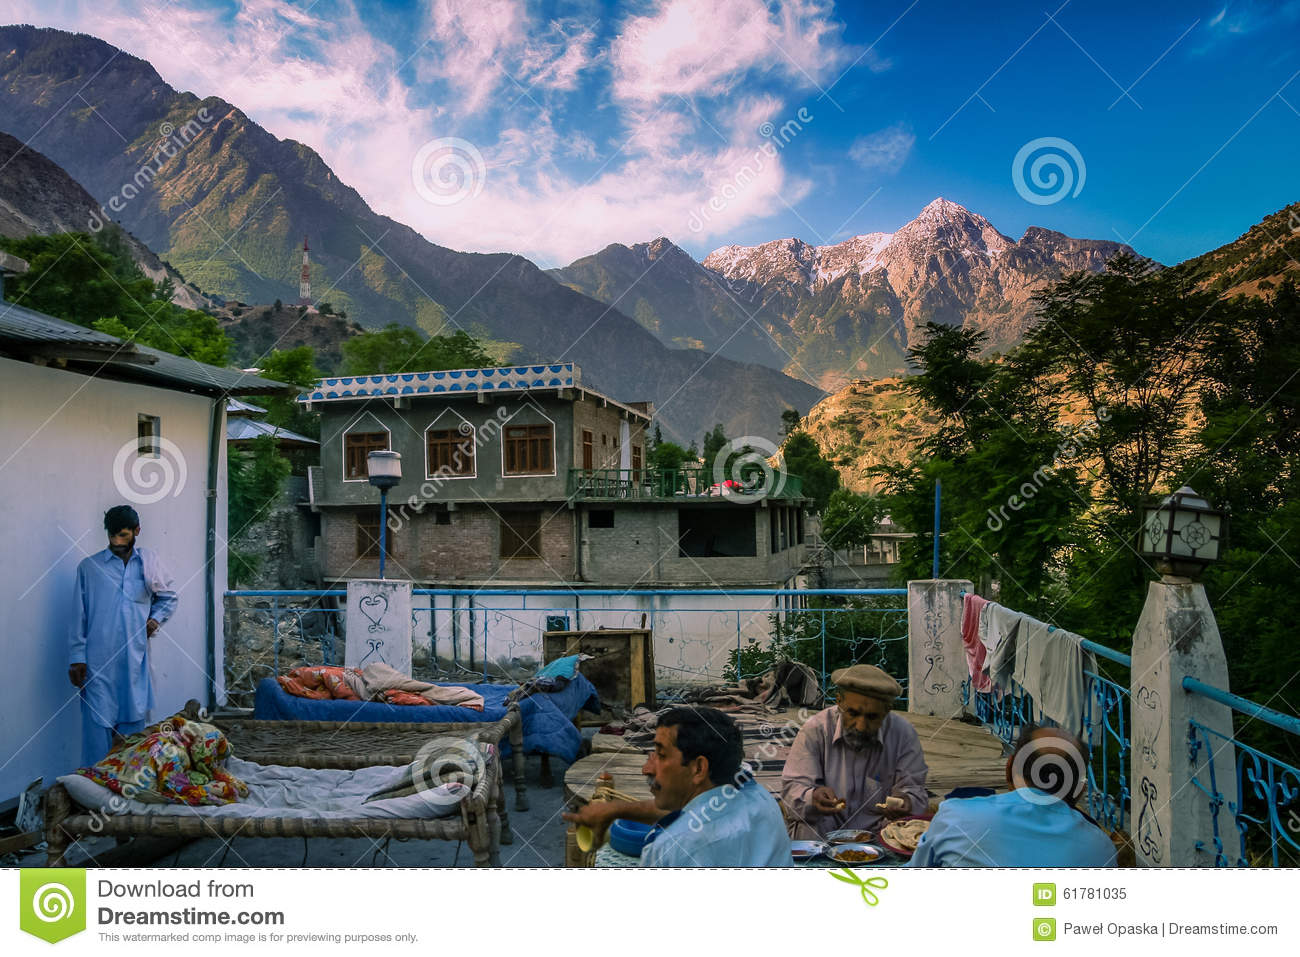 Hotel in karakorum mountains editorial image image 61781035 for The terrace group